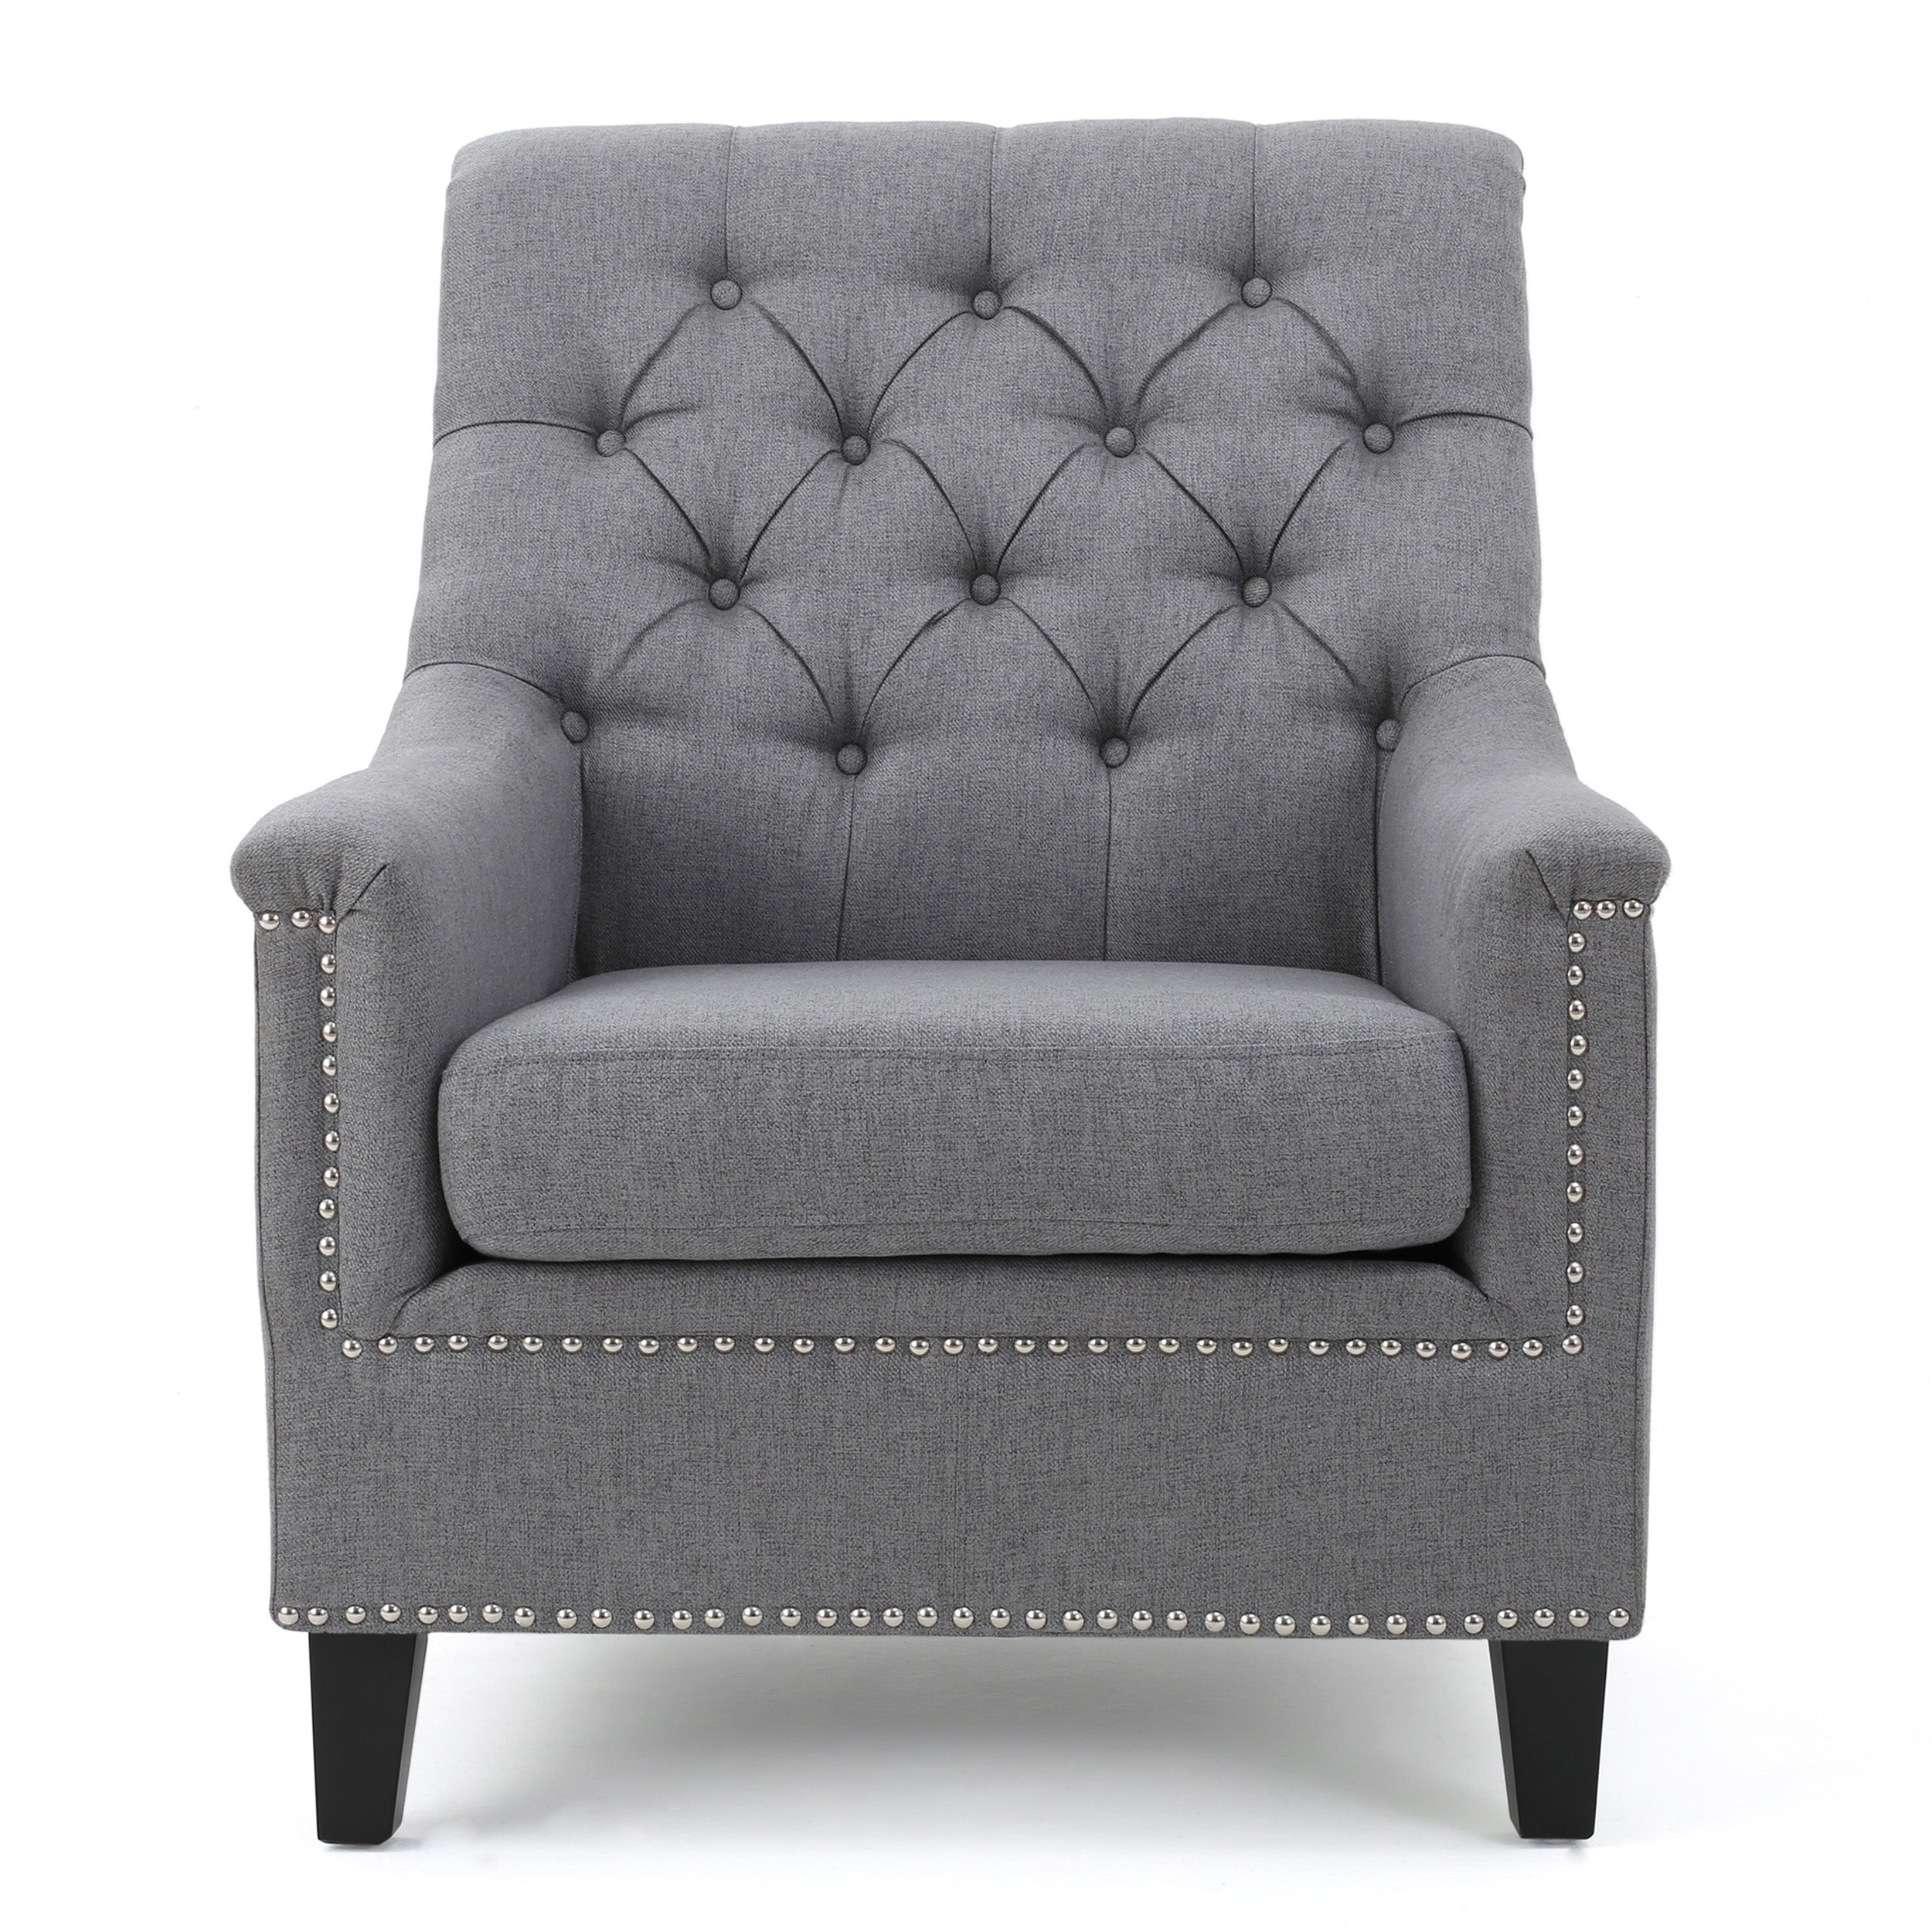 Ailsa Contemporary Button Tufted Fabric Club Chair with Nailhead Trim